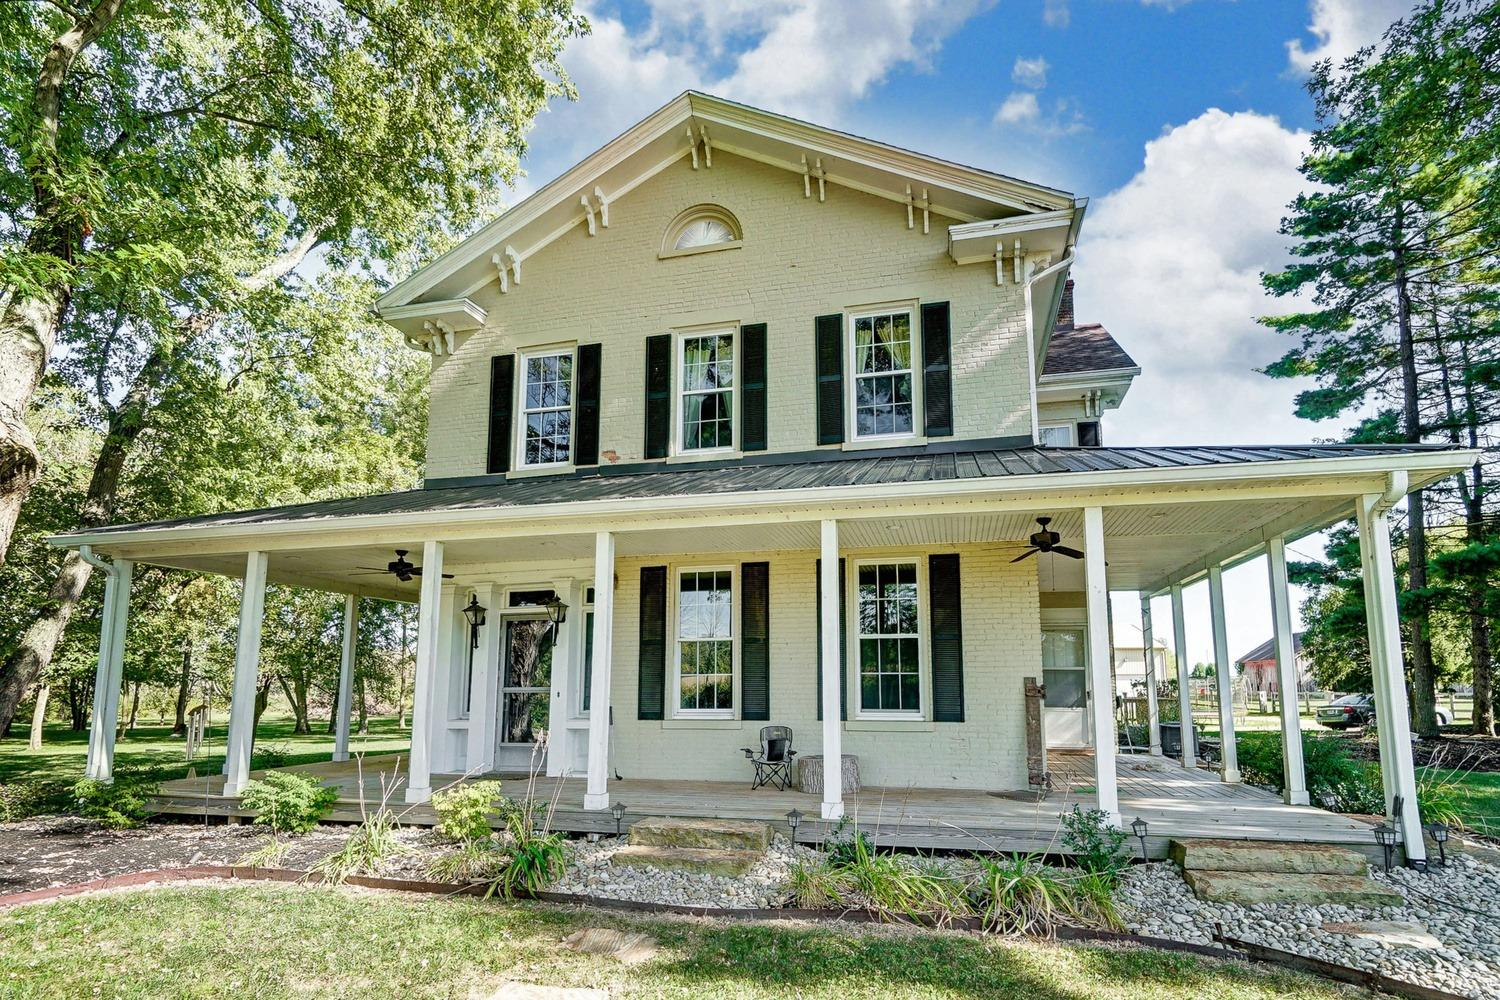 8464 W SR 73 Chester Twp, OH